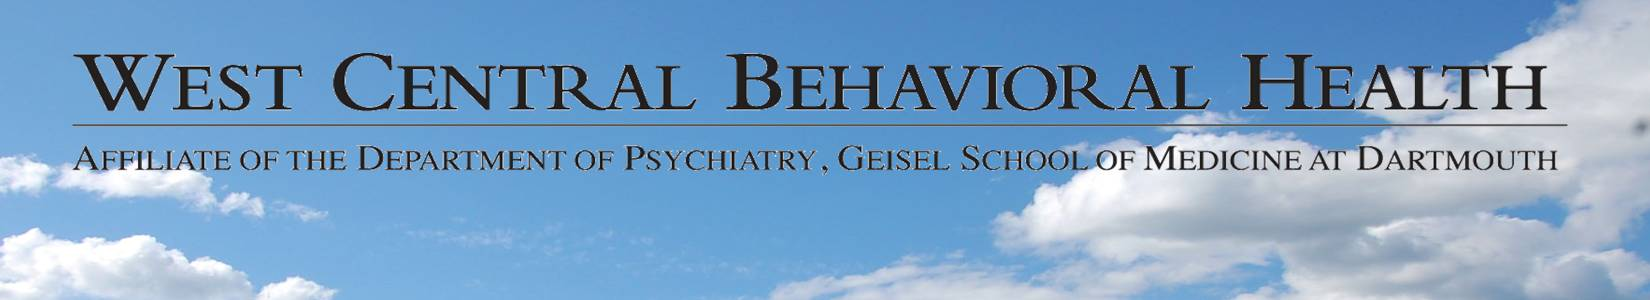 Counseling Center of Newport West Central Behavioral Health